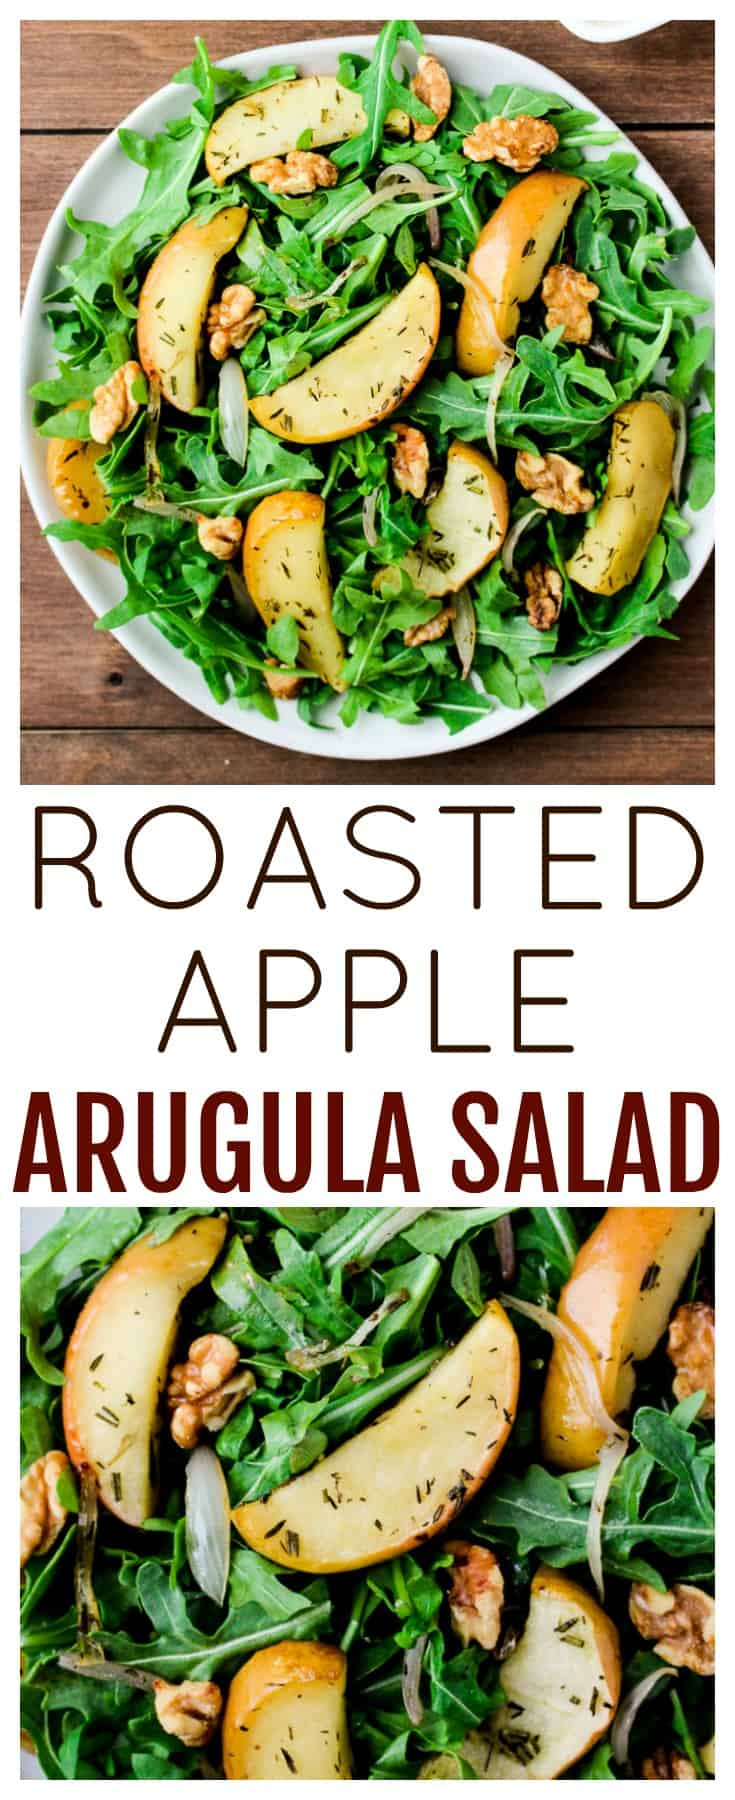 Peppery Arugula is topped with sweet roasted apples, shallots, and herbs, then topped with a lemony dressing that balances everything out perfectly! This Roasted Apple Arugula Salad is a perfect summer salad, but also great in the fall! | #dlbrecipes #saladrecipe #summerrecipes #fallrecipes #applesalad